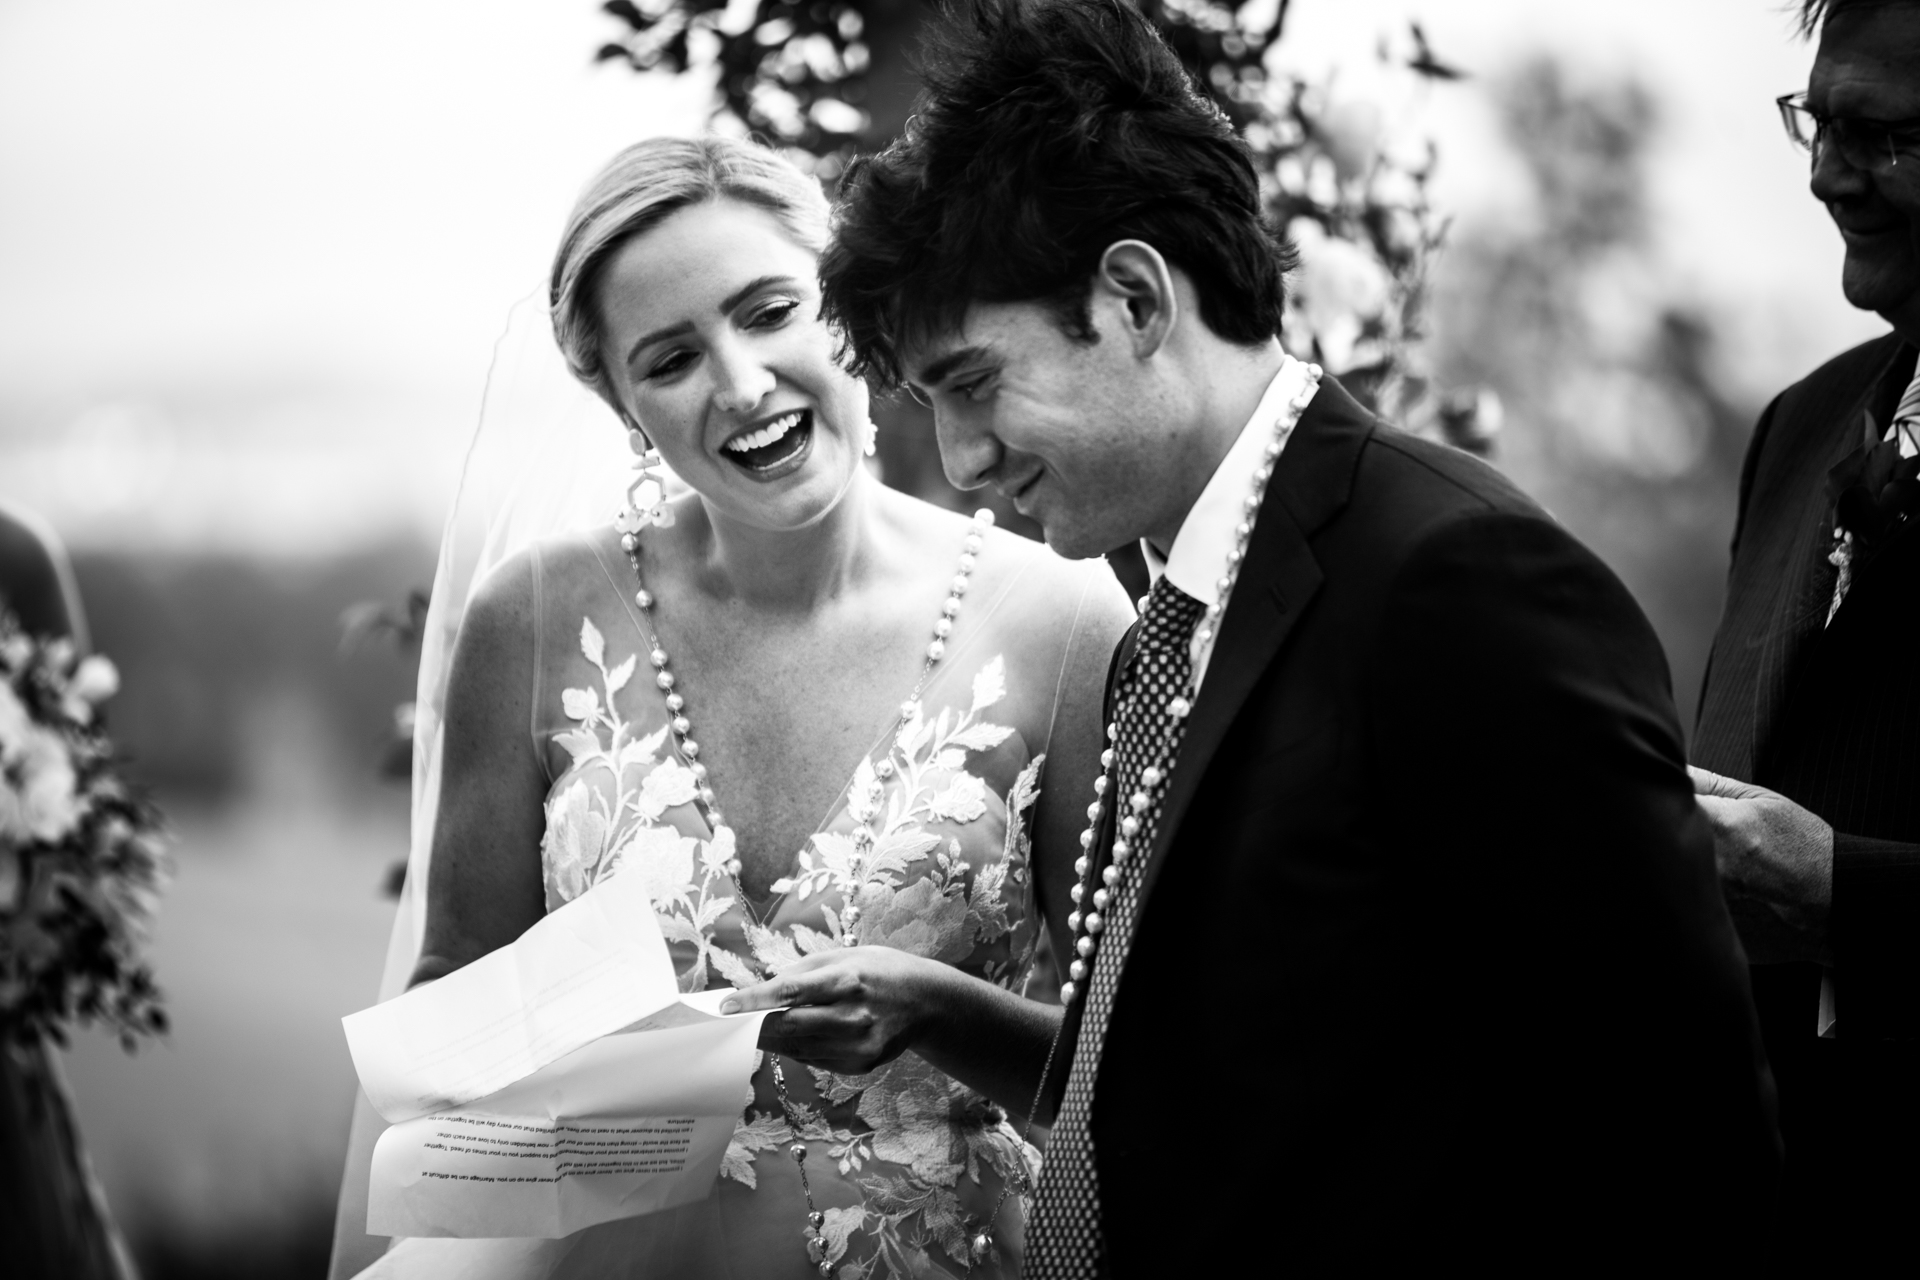 BW Wedding Photography, Tarn Marriage Ceremony | A few words from the bride